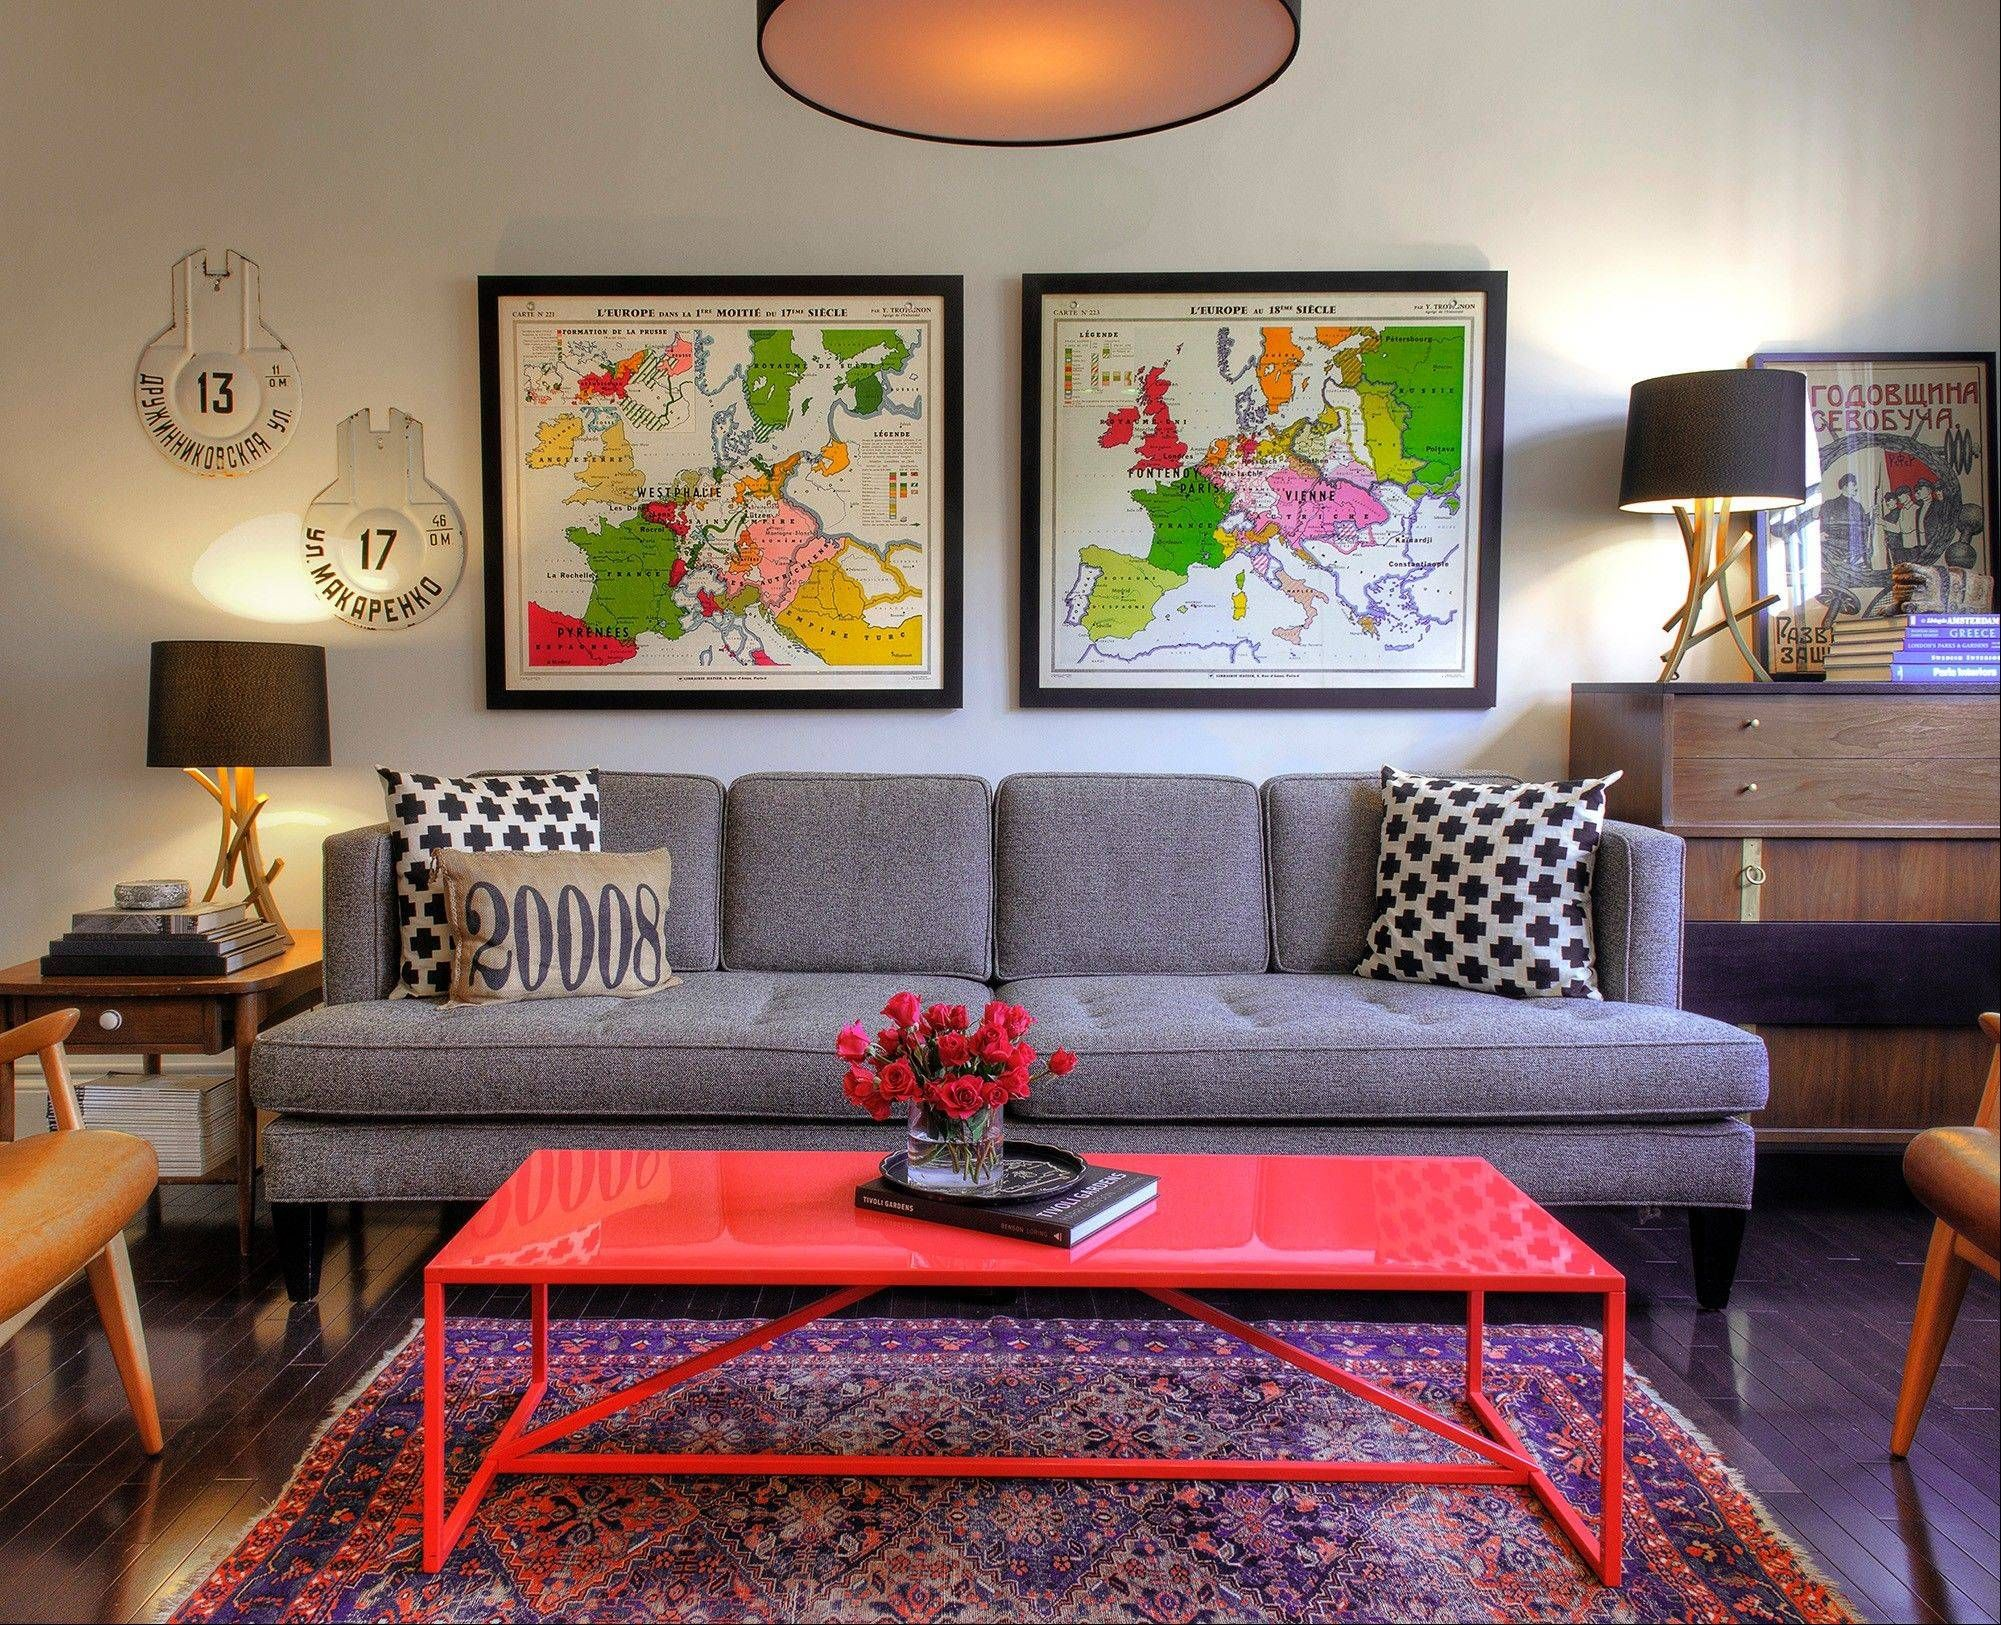 Nailing the art of small space living | Apartment ...